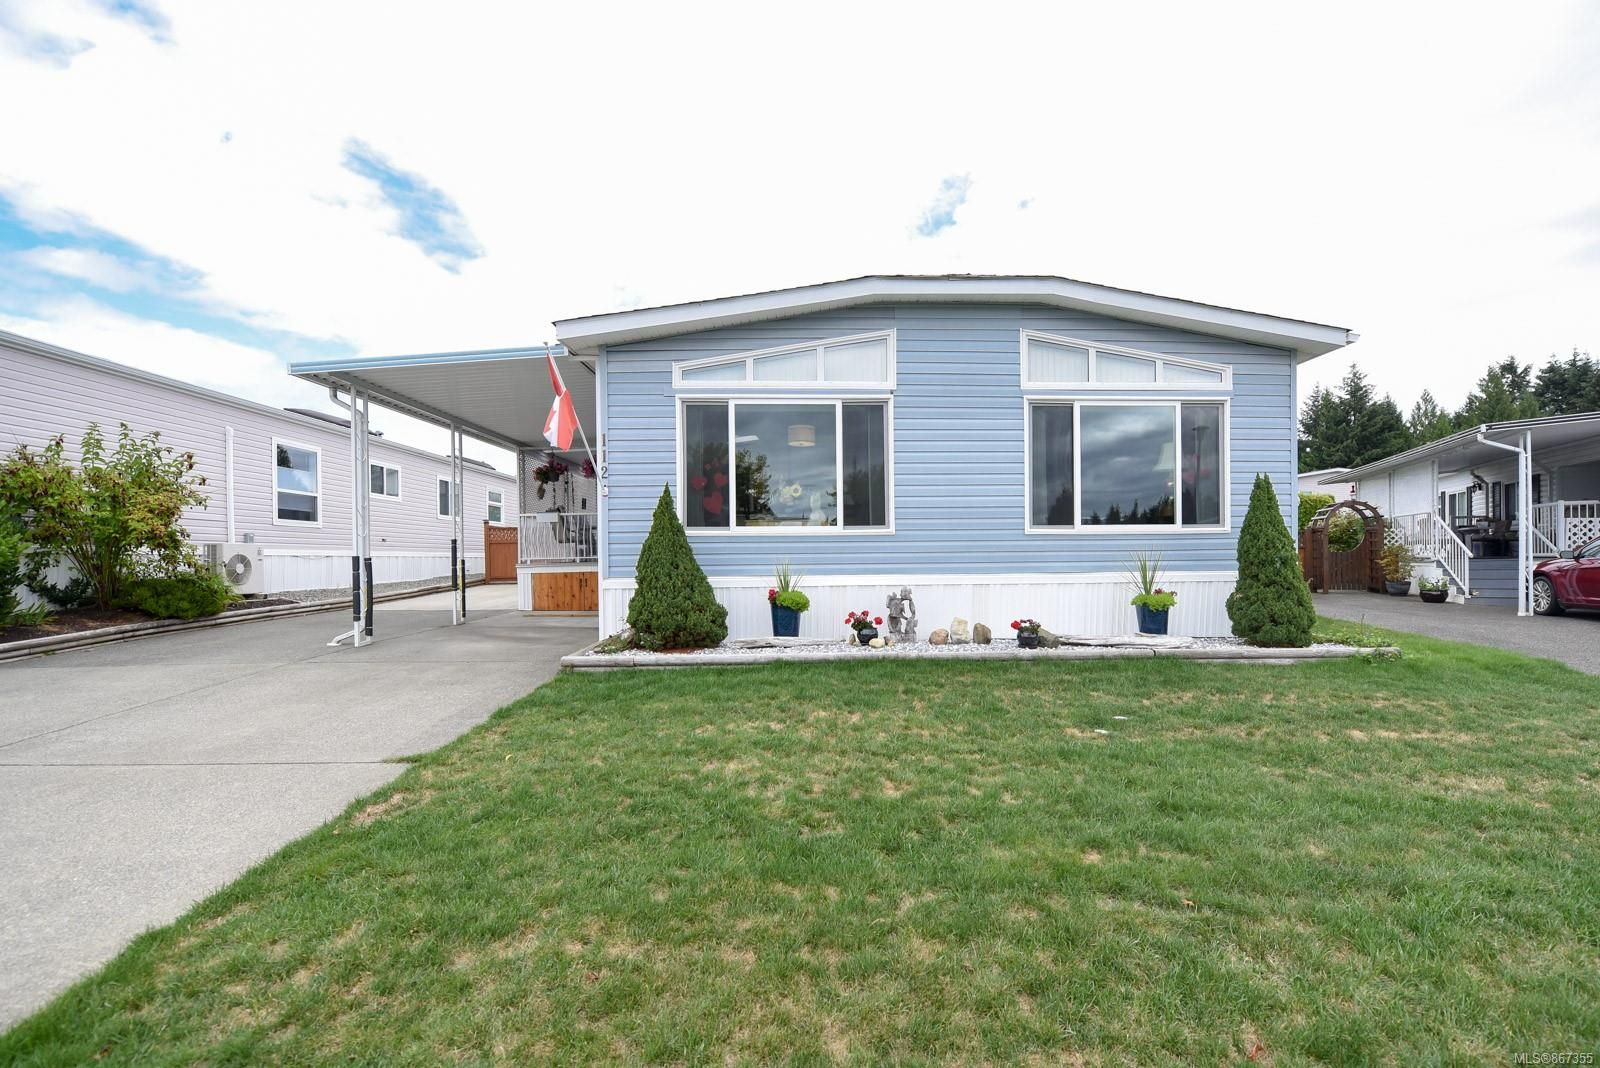 Main Photo: 112 4714 Muir Rd in : CV Courtenay City Manufactured Home for sale (Comox Valley)  : MLS®# 867355